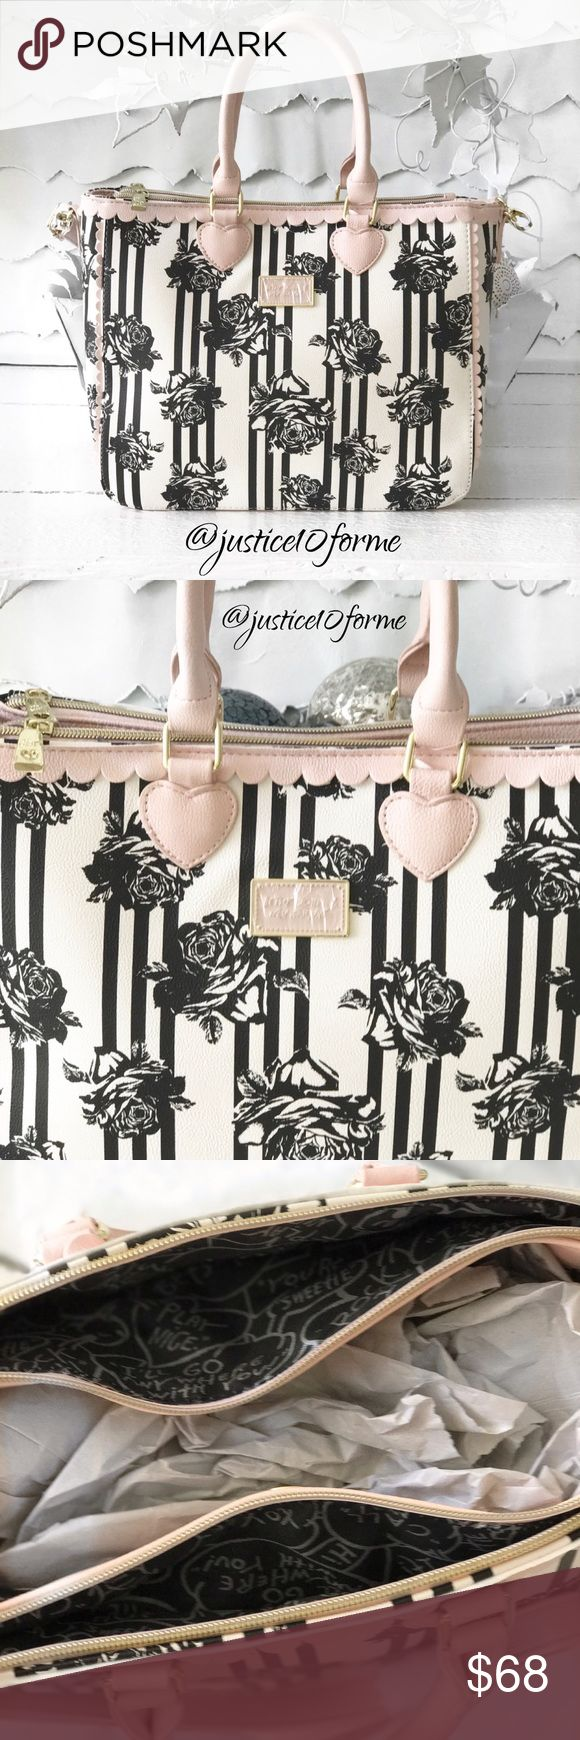 NewBJ Floral 3 Compartment Tote Black & white floral tote with blush pink scalloped top, blush bottom, handles & detachable shoulder strap. Inside center had blush trimmed zip pocket & 2 slip pockets. Front & back of bag have zip closed compartments. This bag is beautiful! NWT Betsey Johnson Bags